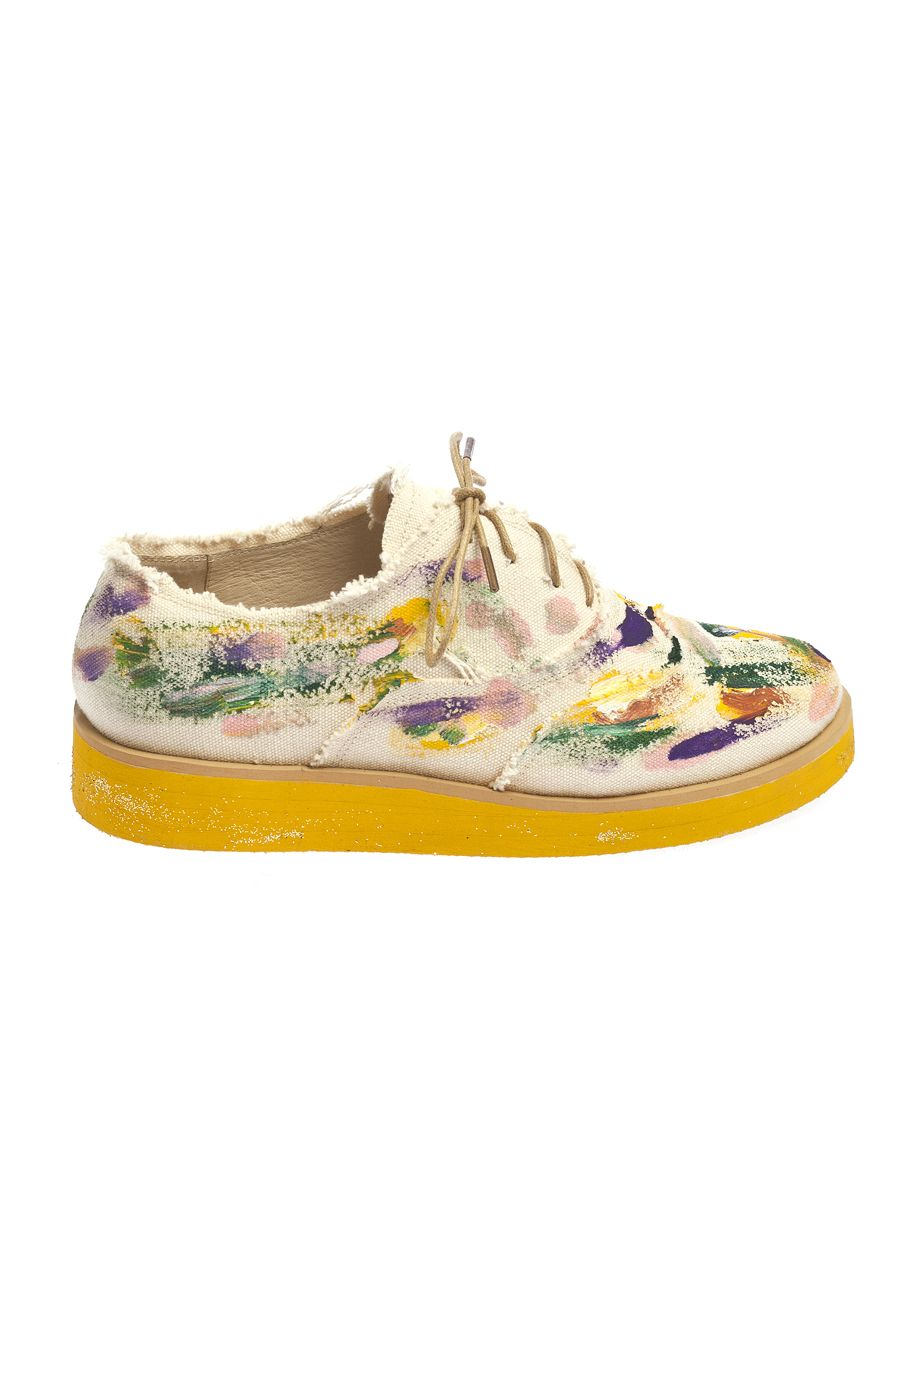 Anouki gorgeous men style inspired painted shoes.